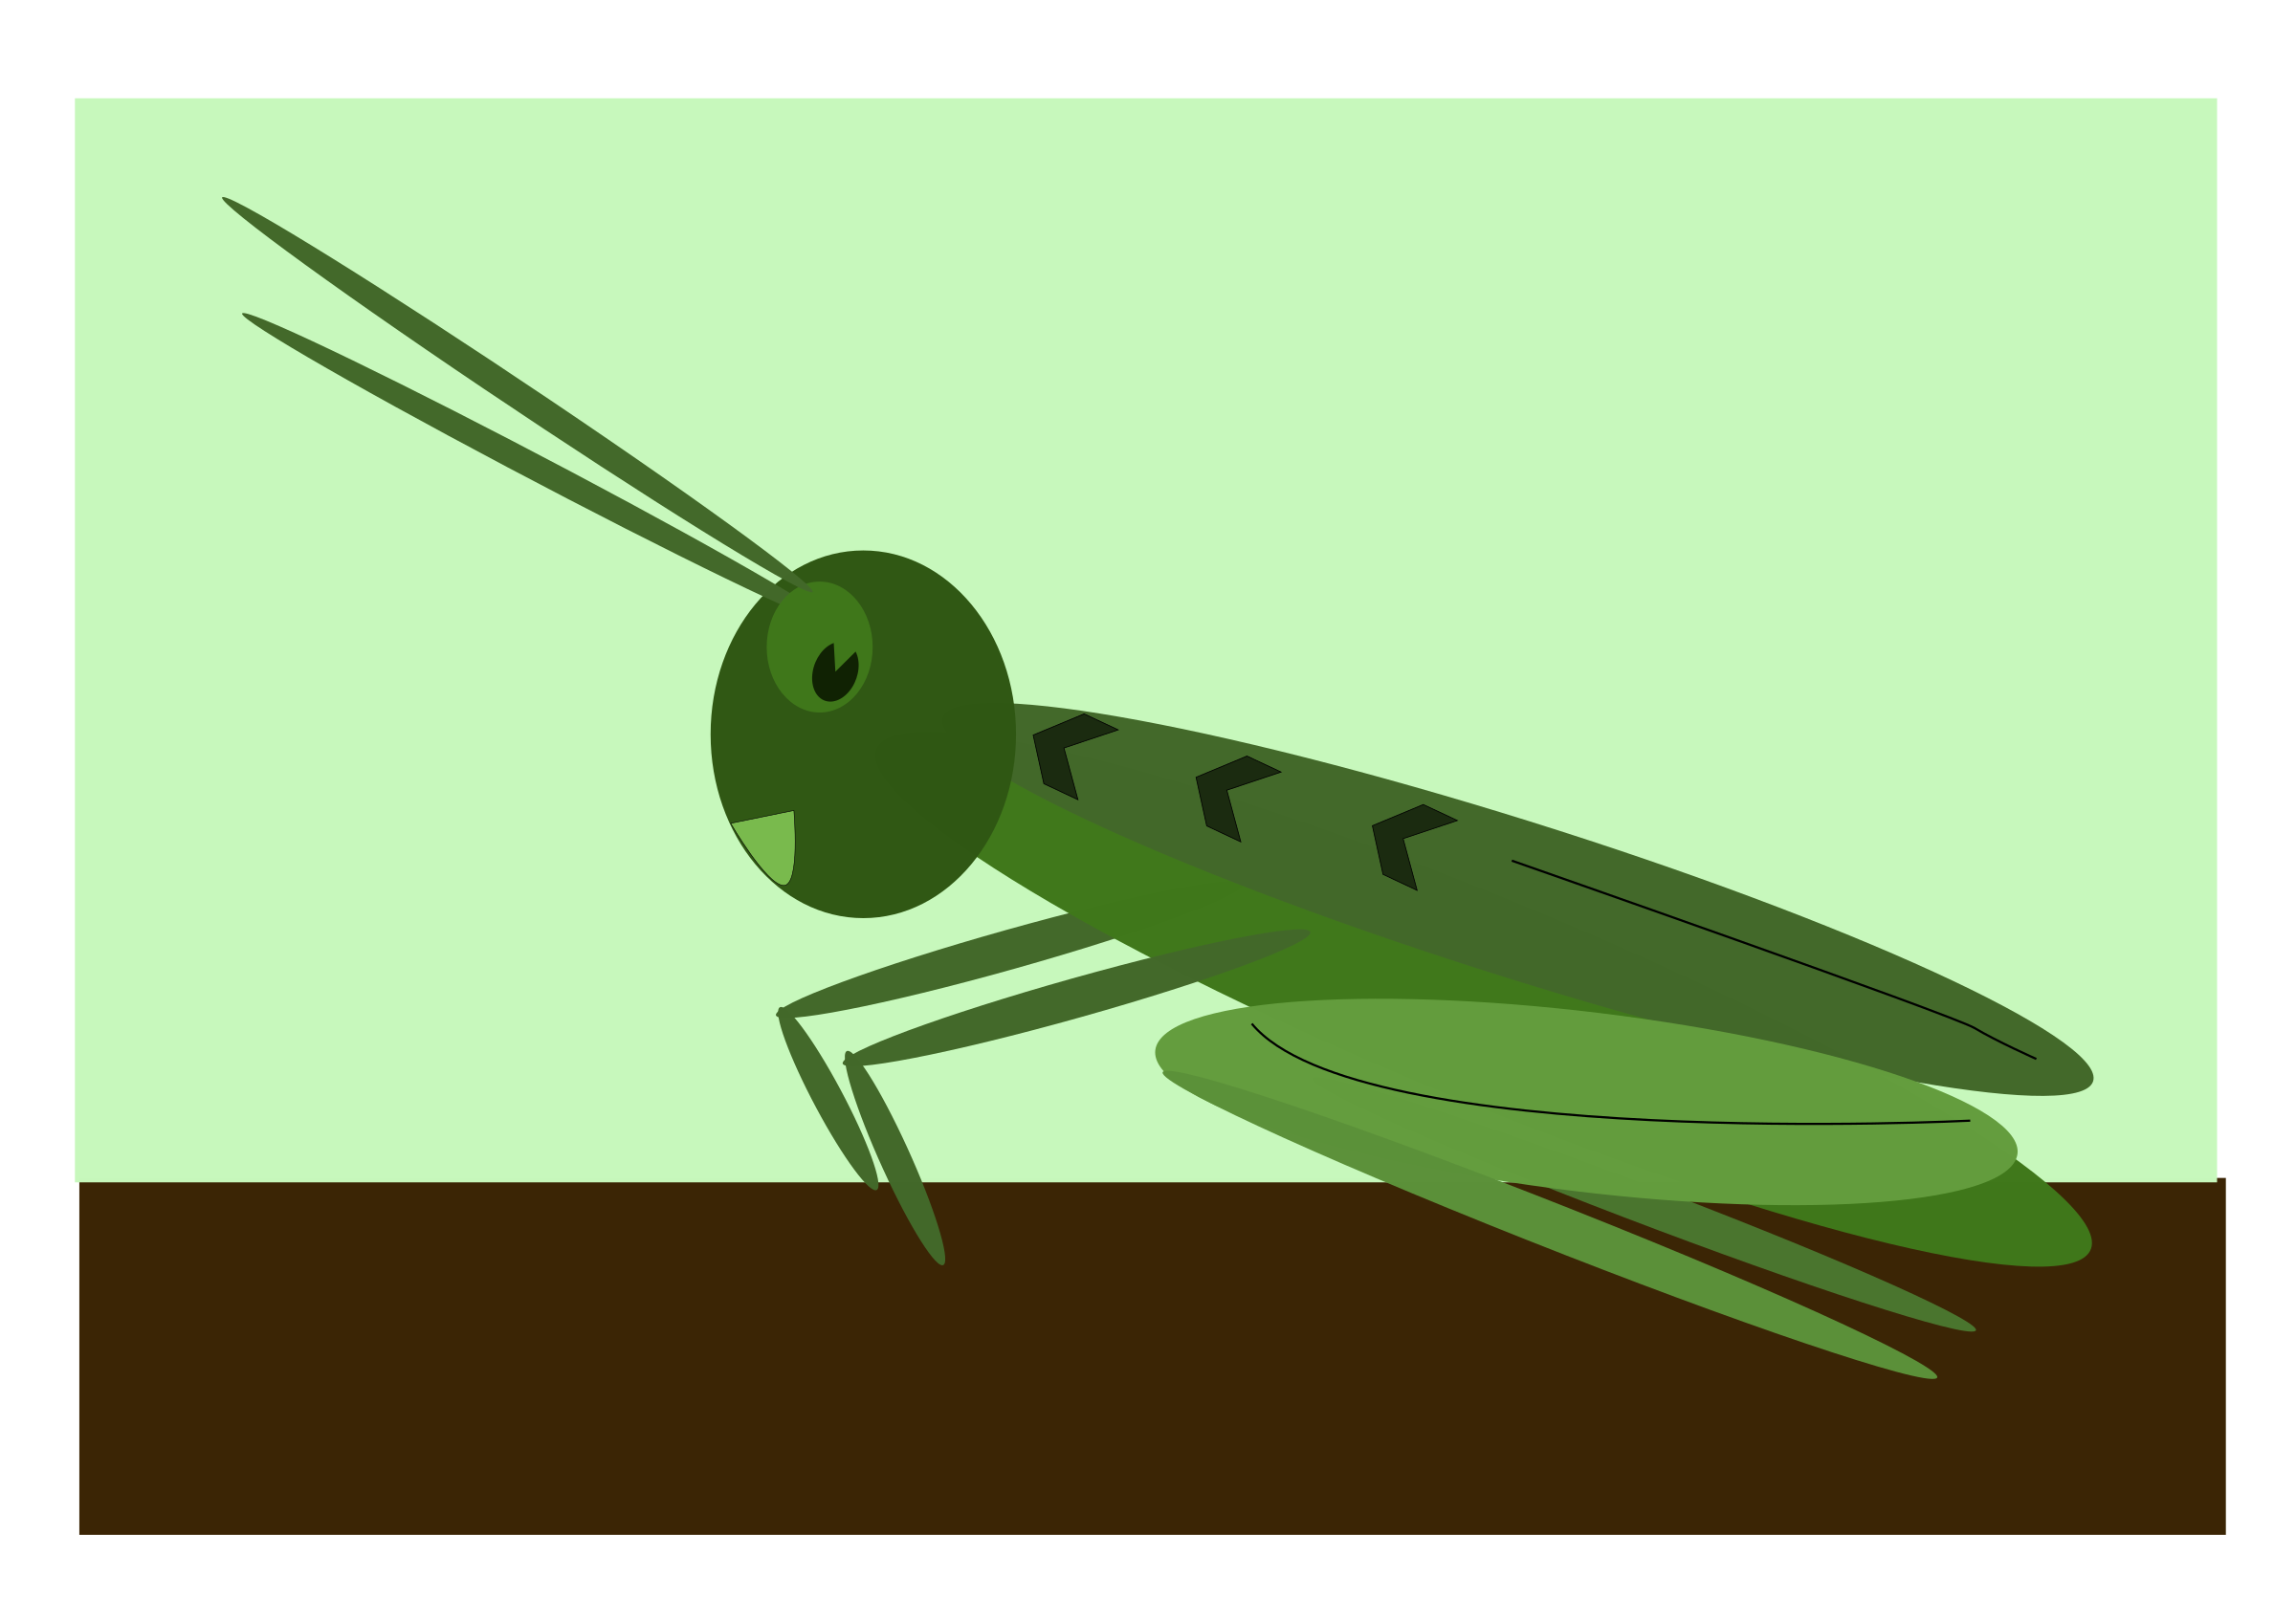 grasshopper by me4tanik